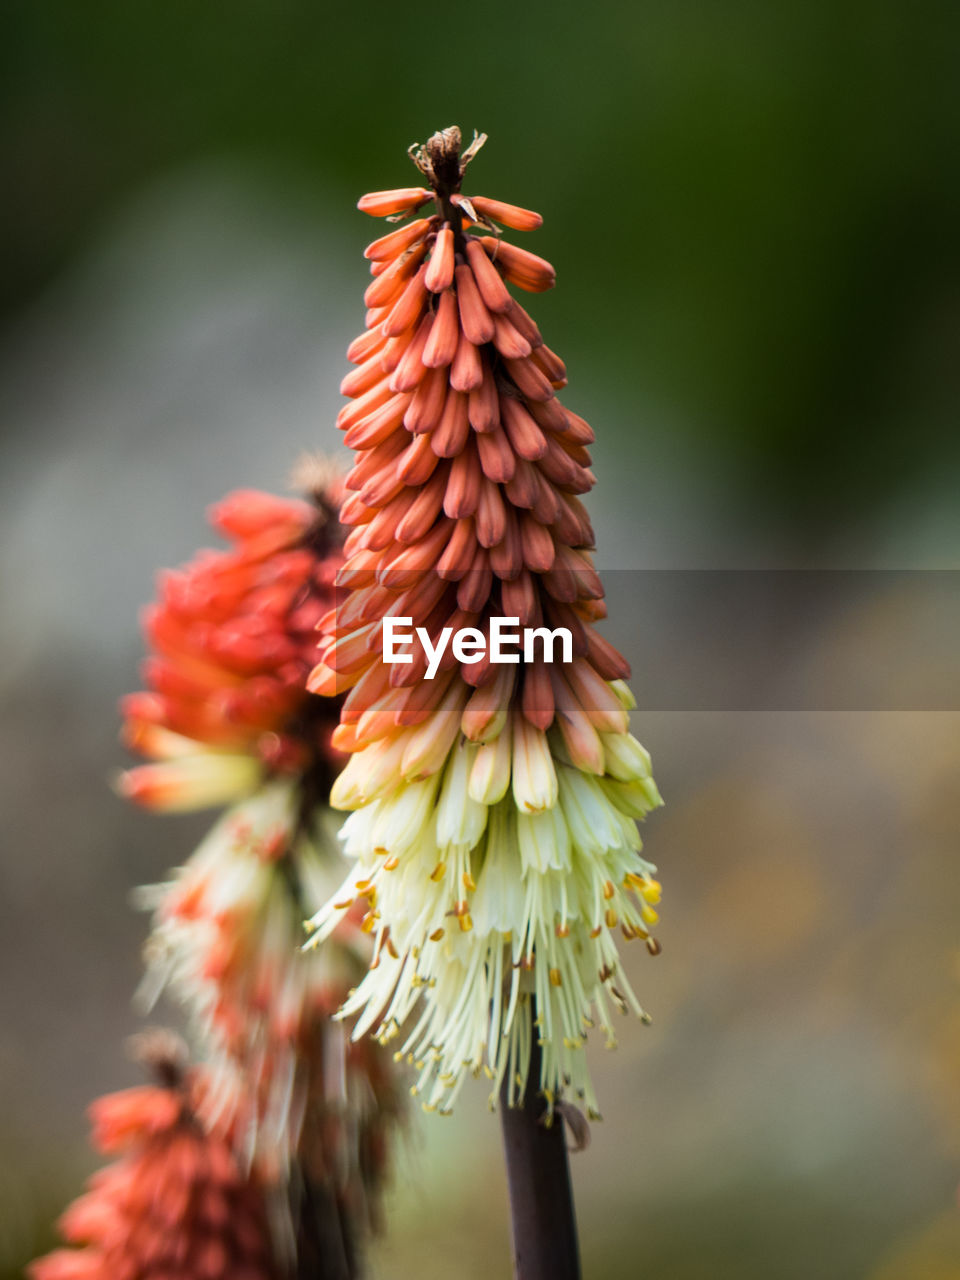 flower, plant, flowering plant, focus on foreground, close-up, beauty in nature, fragility, growth, vulnerability, freshness, nature, no people, red, day, flower head, inflorescence, petal, plant stem, outdoors, bud, springtime